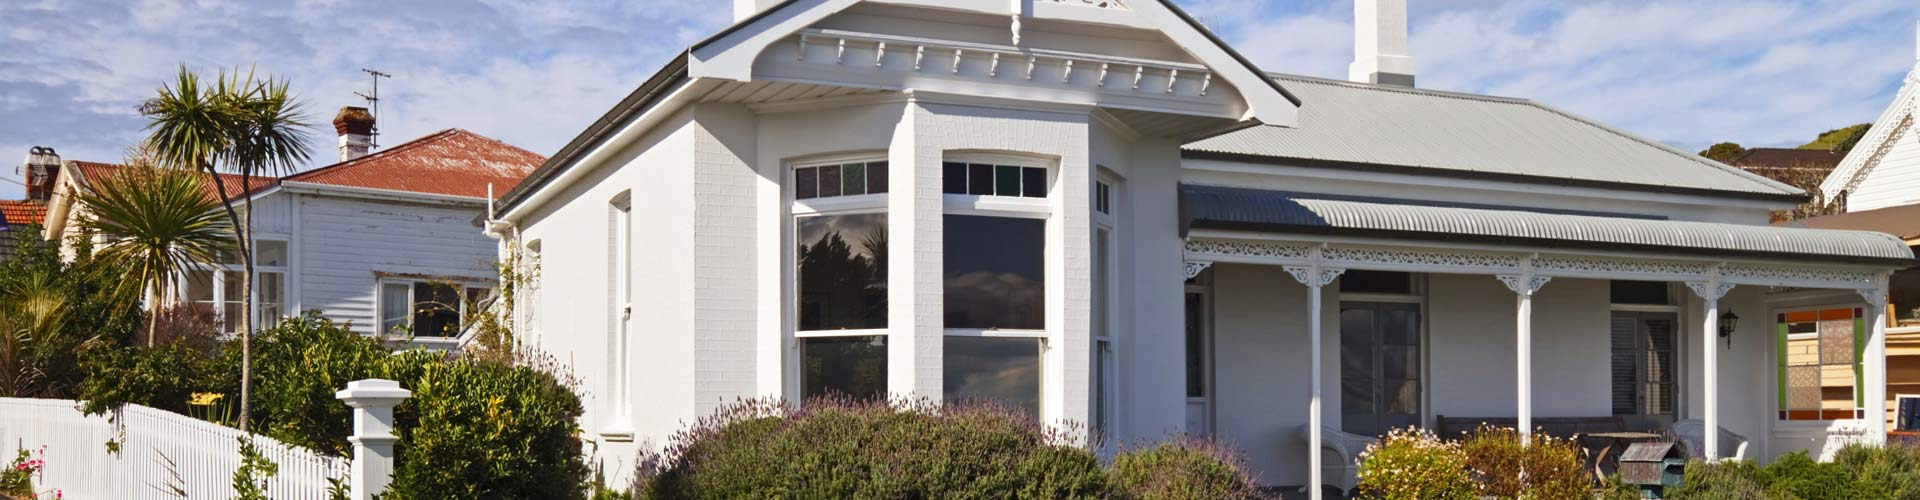 Queenslander and Colonial style house